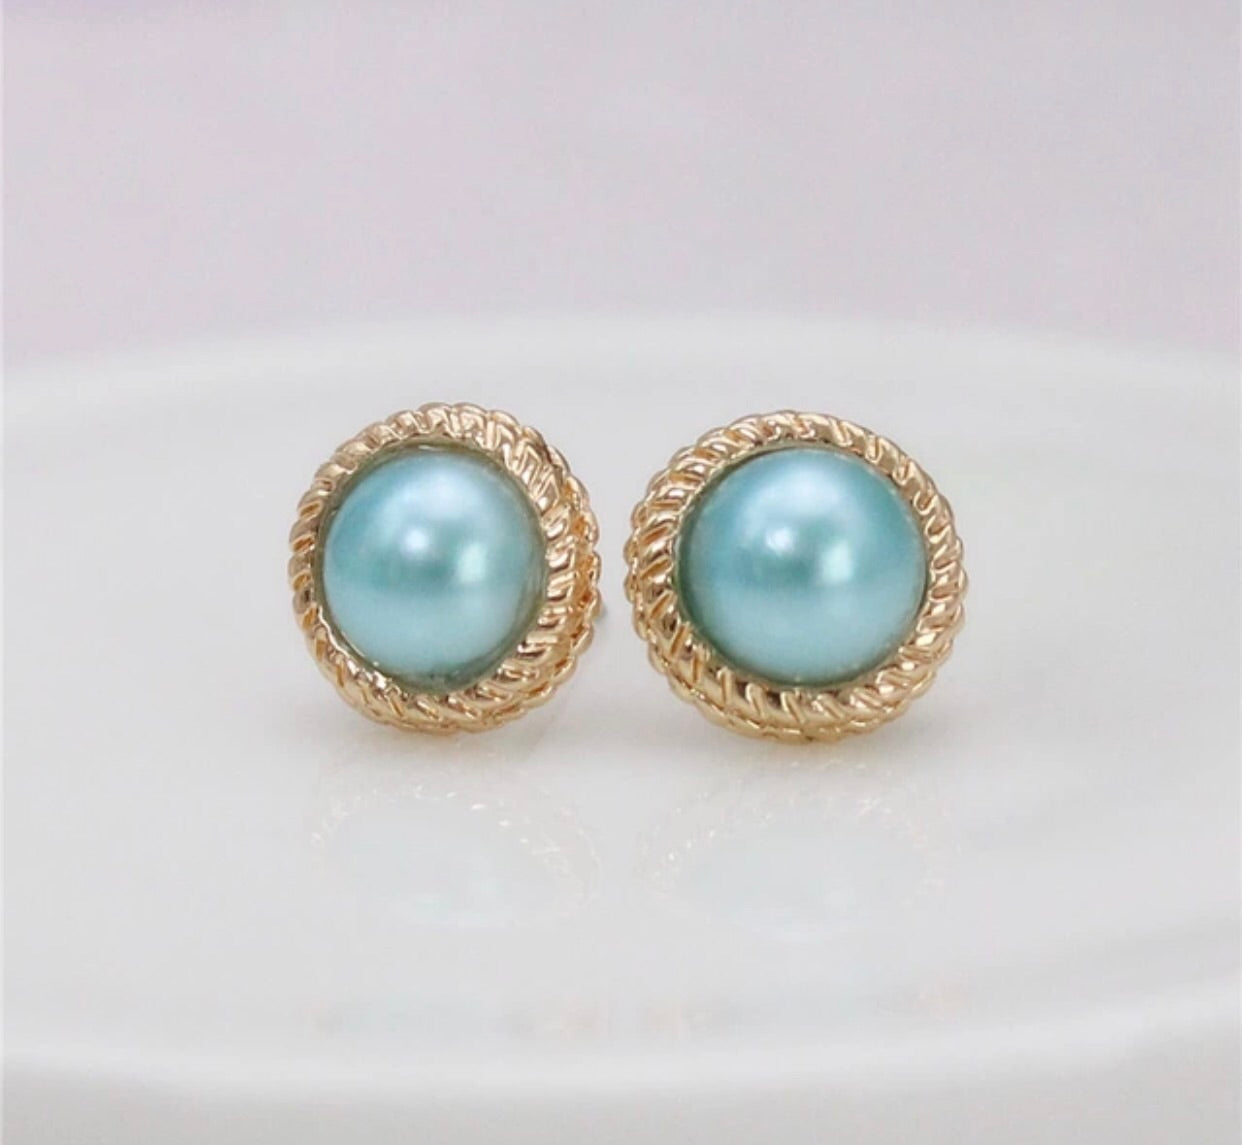 Pearl stud earrings with a gold frame